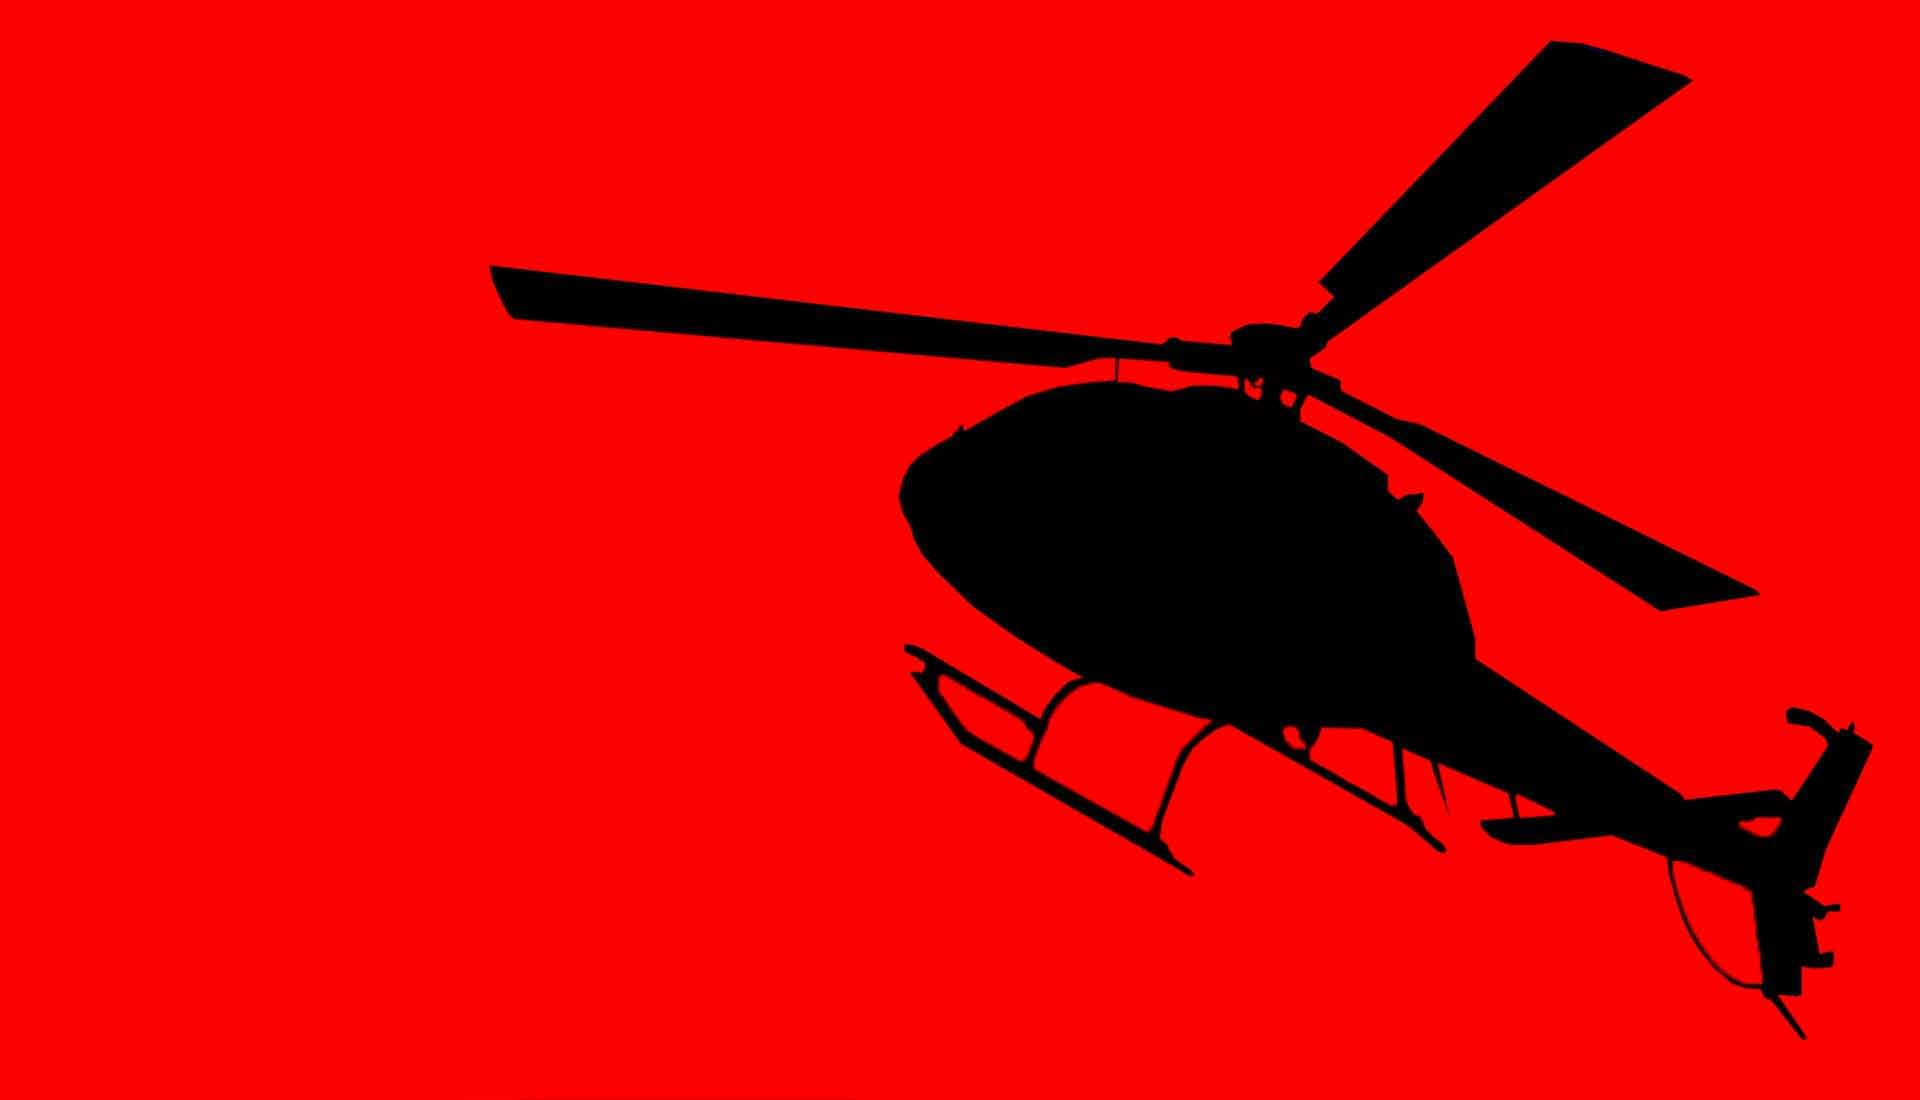 Redi helicopter for air rescue